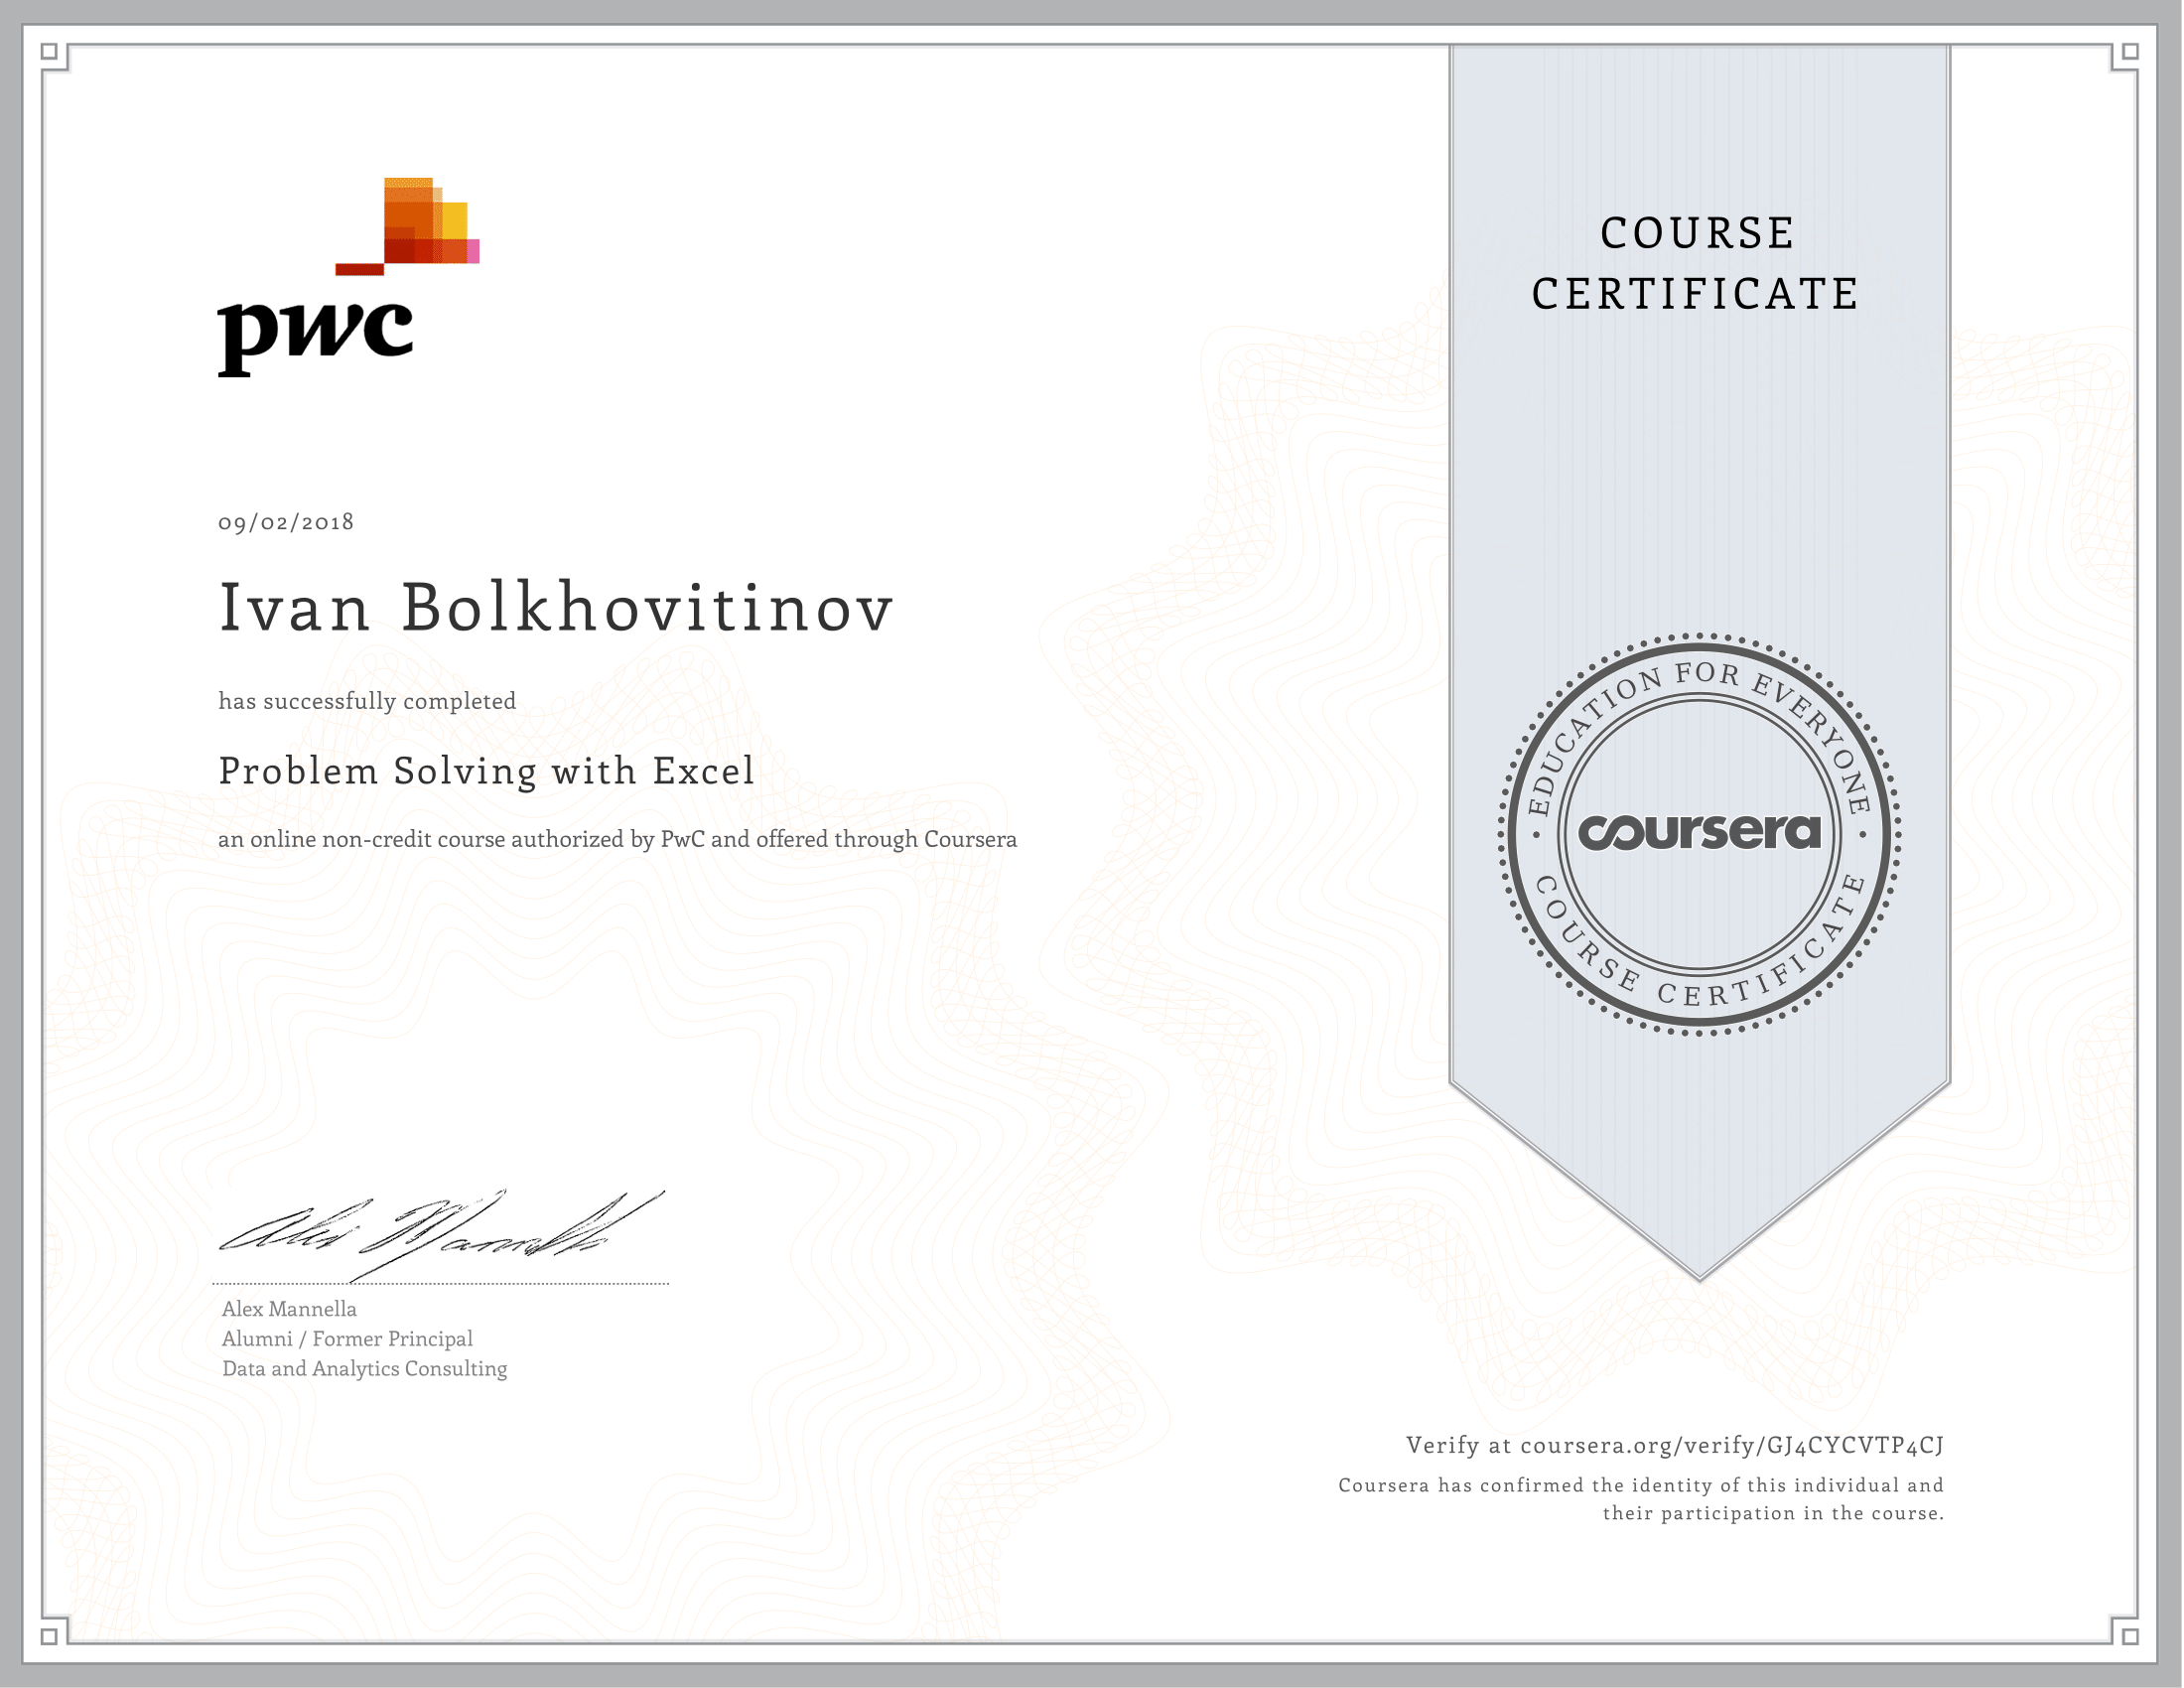 Coursera - PwC - Problem Solving with Excel